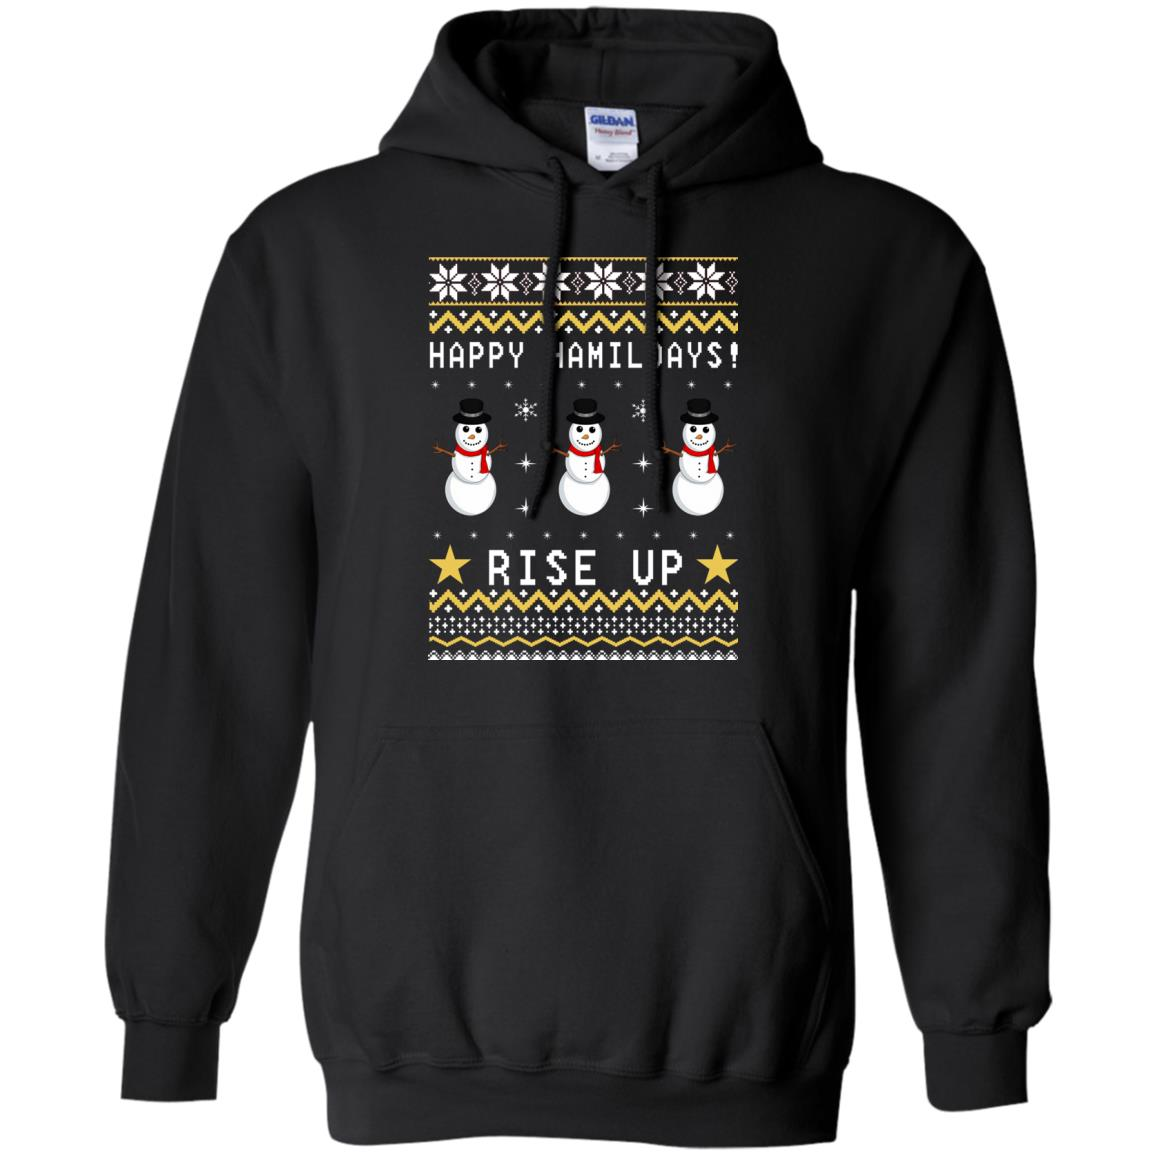 Happy Hamildays Rise Up Christmas Ugly Sweater, Shirt - image 3394